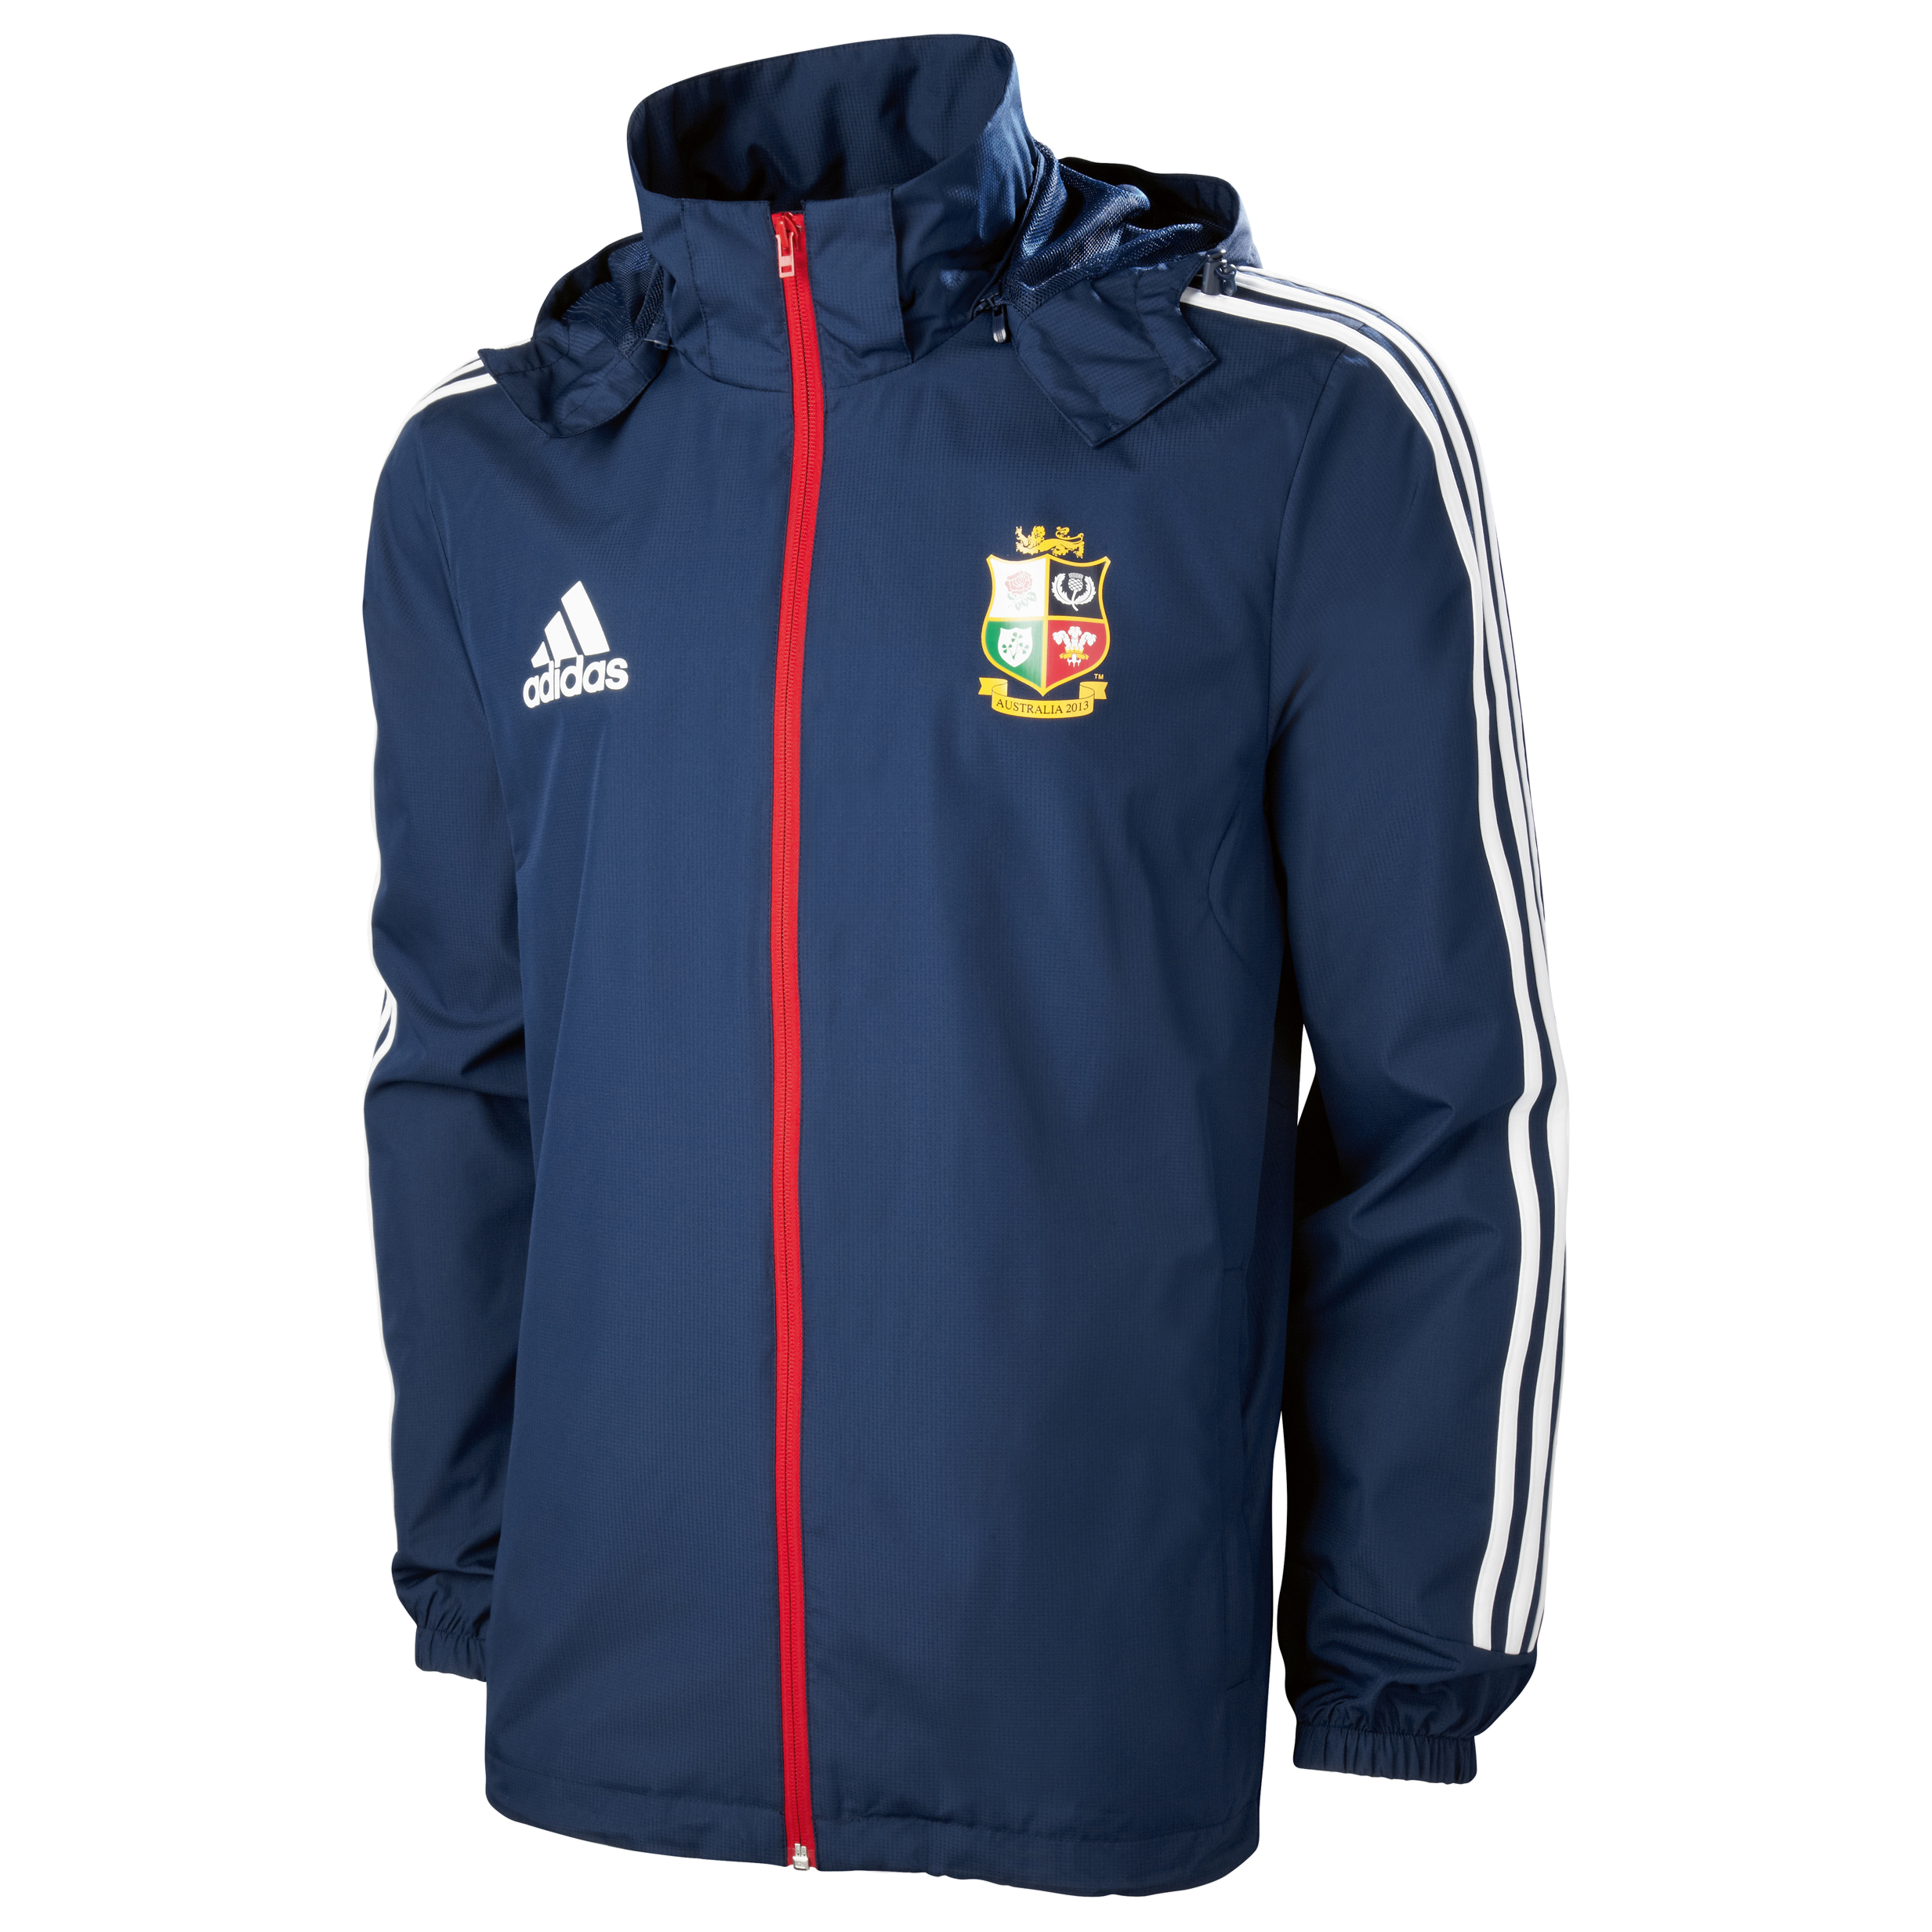 adidas British and Irish Lions All Weather Jacket - Collegiate Navy/White